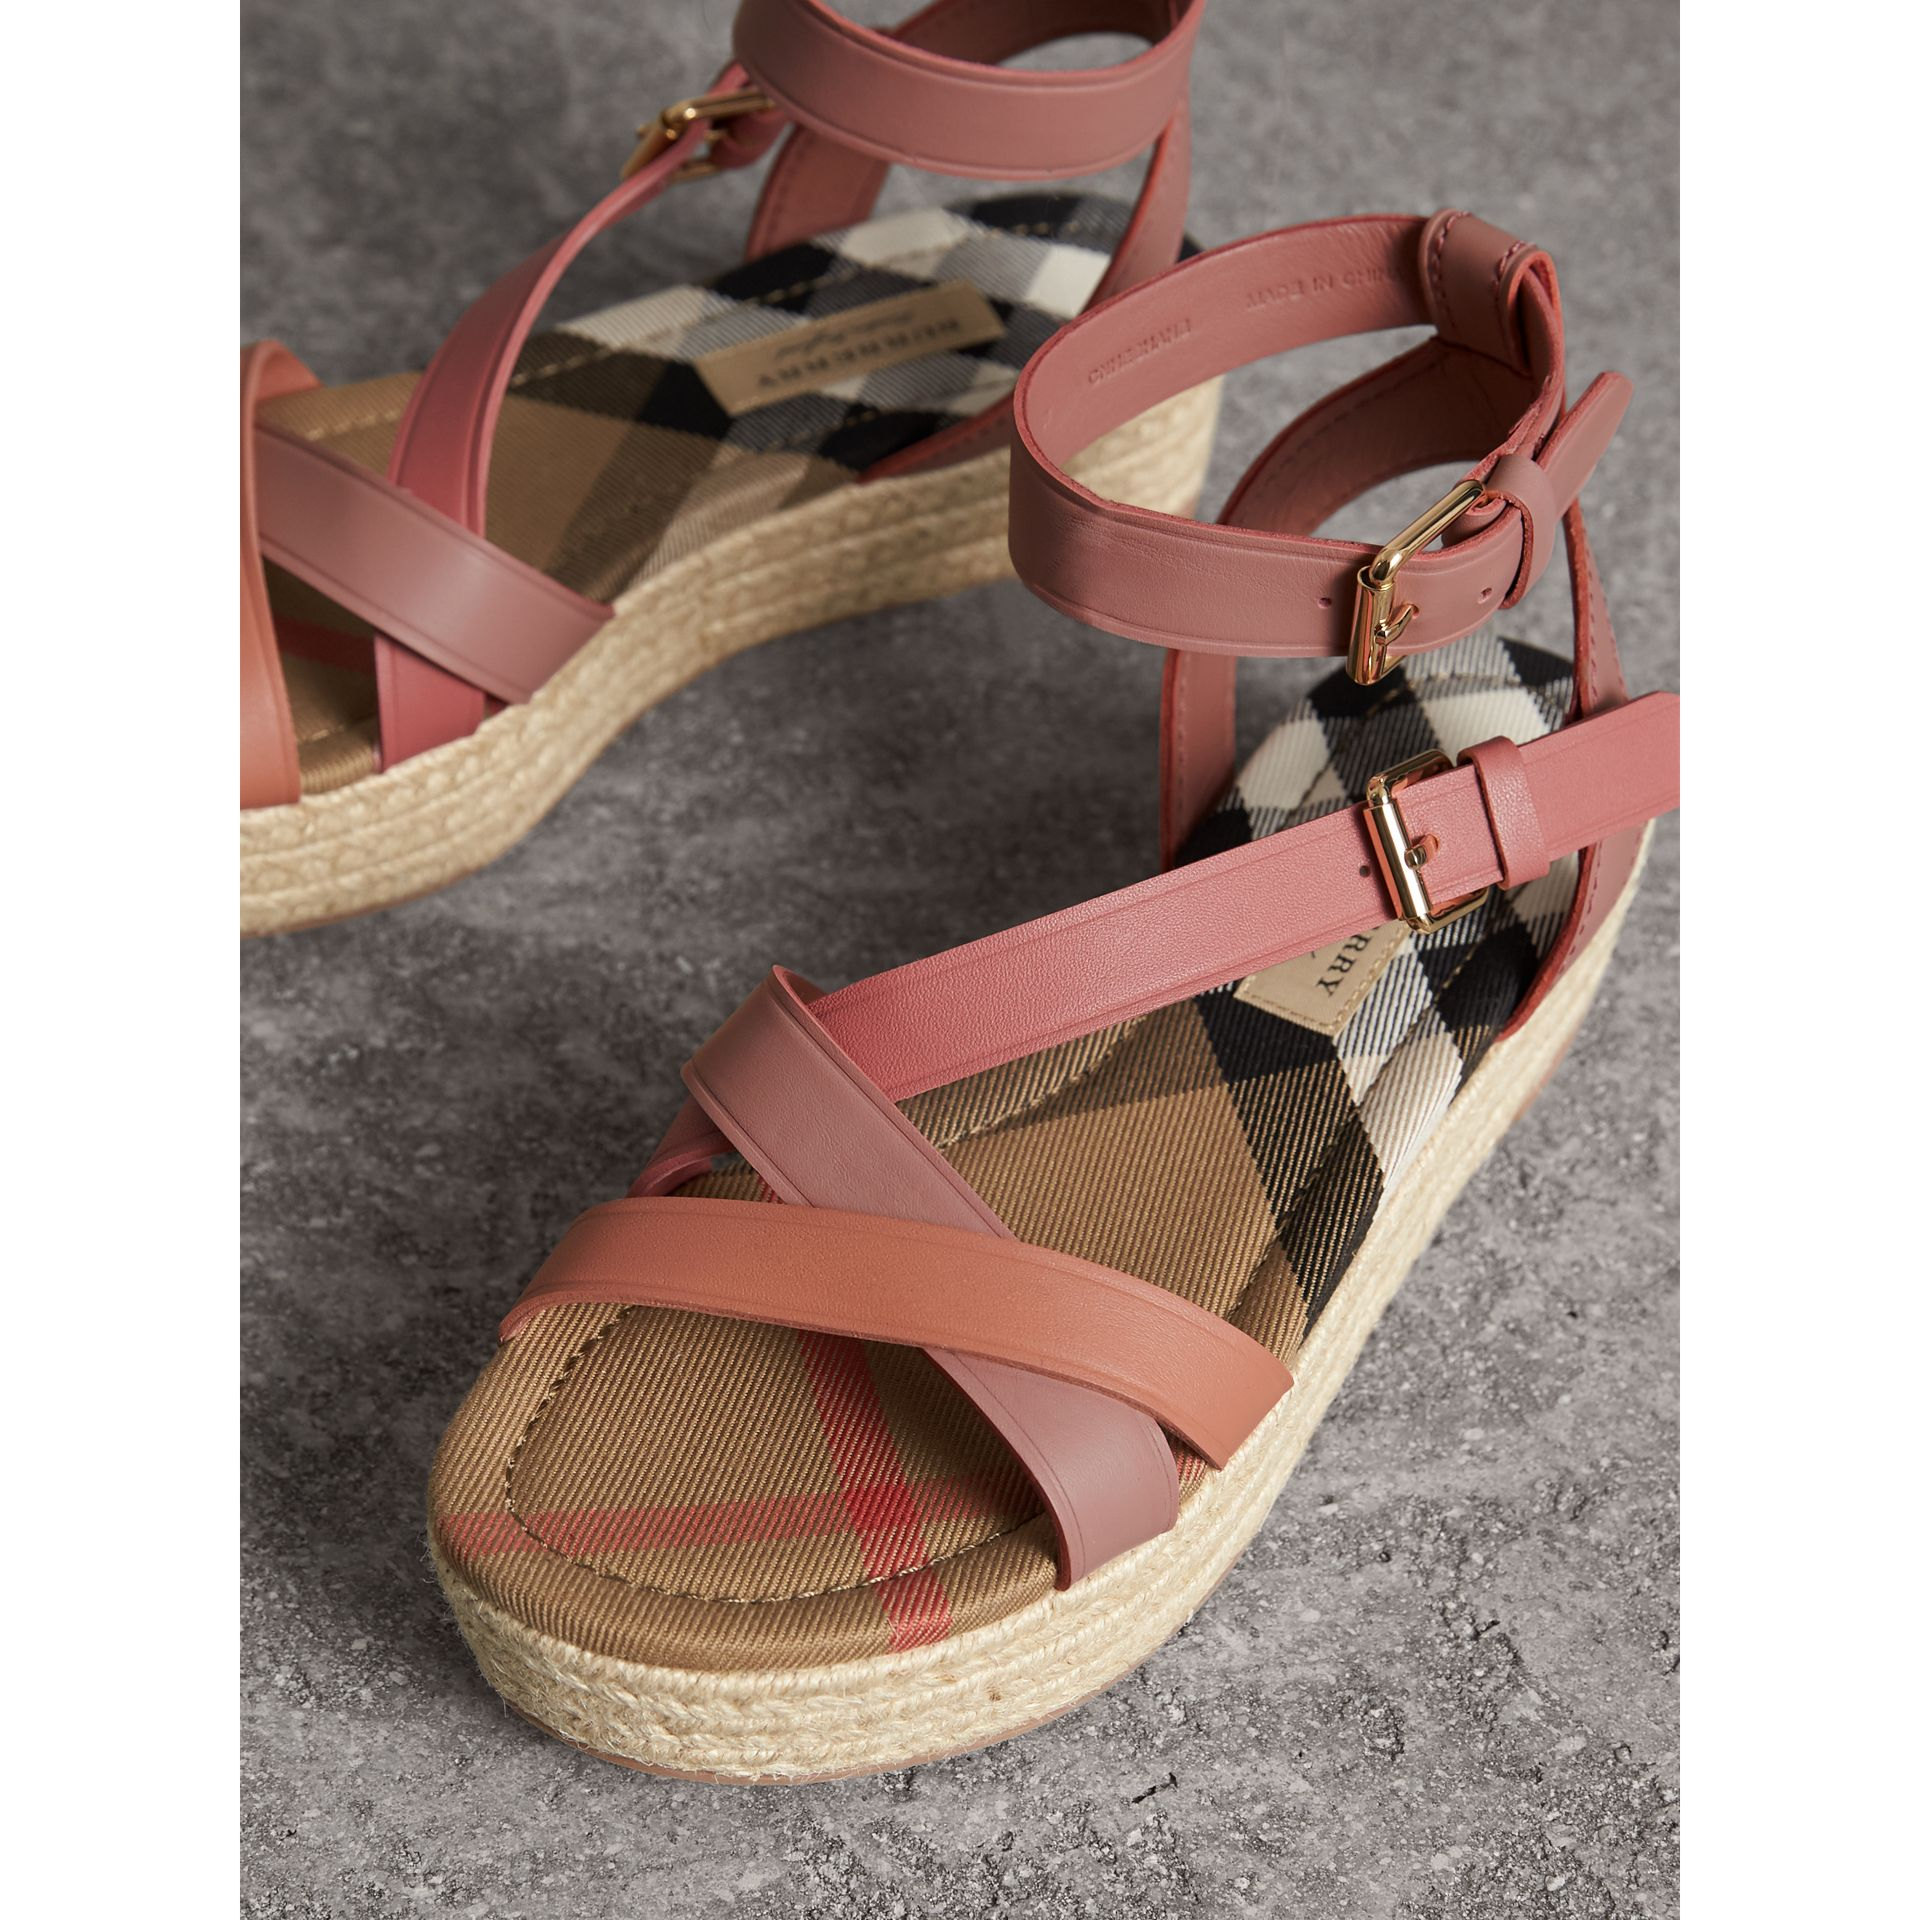 Two-tone Leather Espadrille Sandals in Dusty Pink - Women | Burberry United Kingdom - gallery image 5